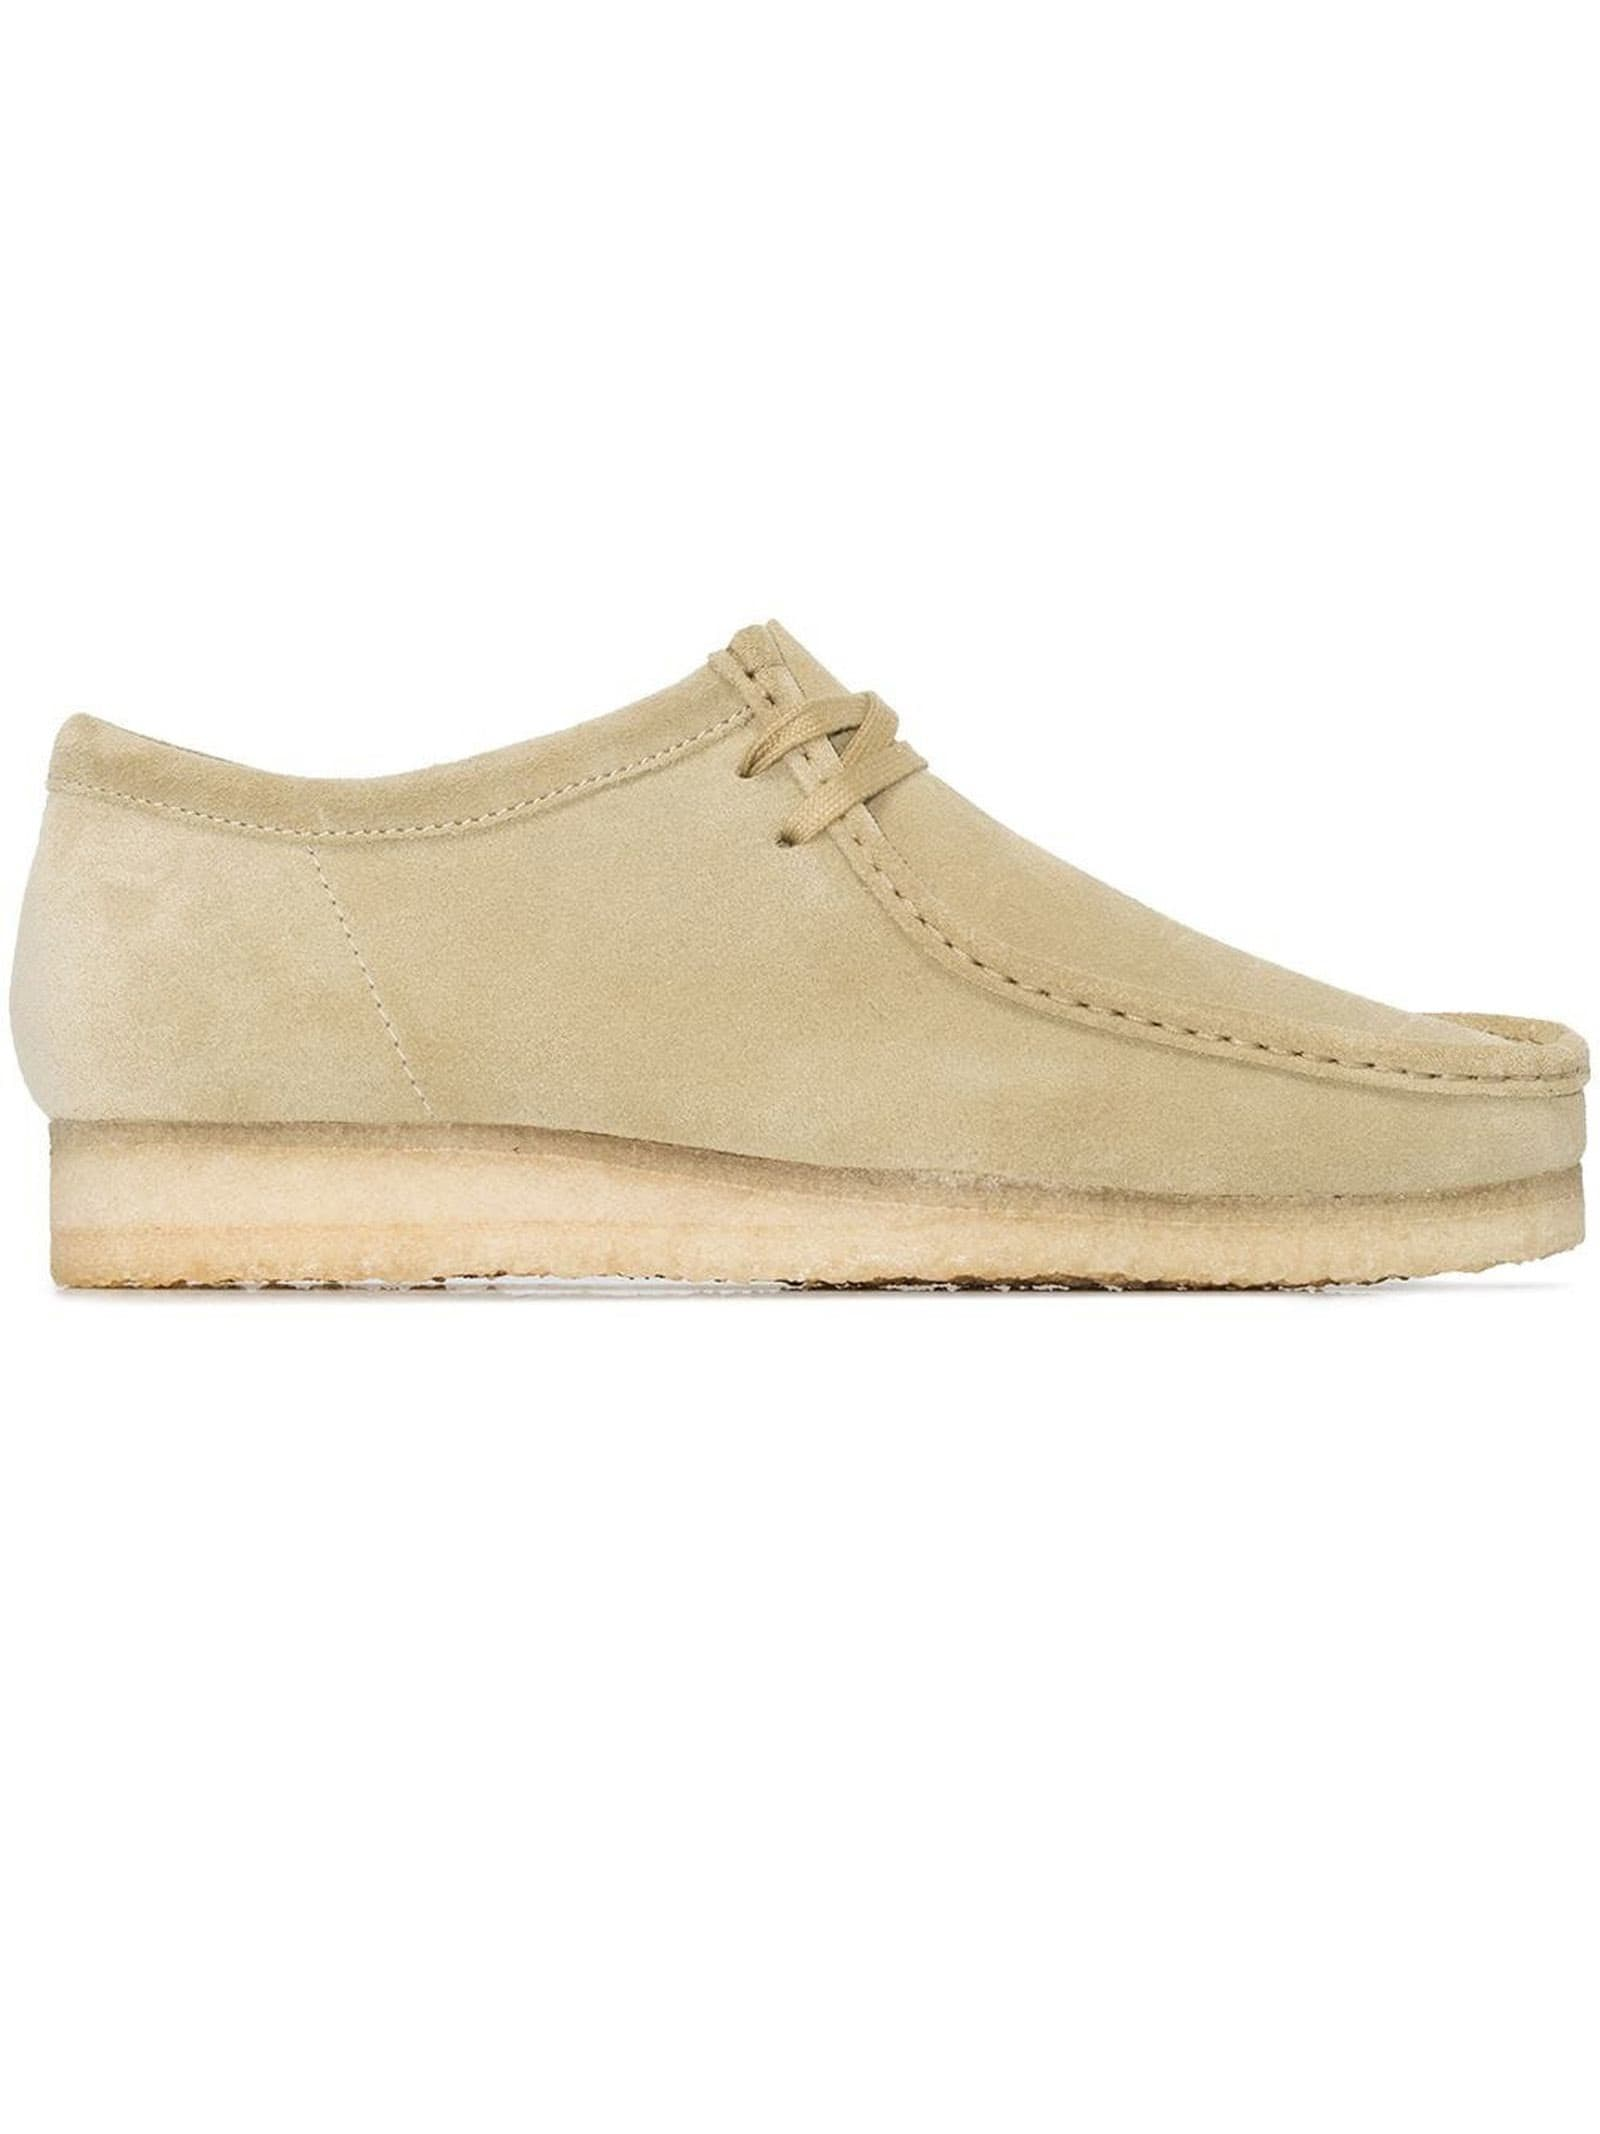 Clarks Suedes MAPLE WALLABEE LACE-UP SHOES